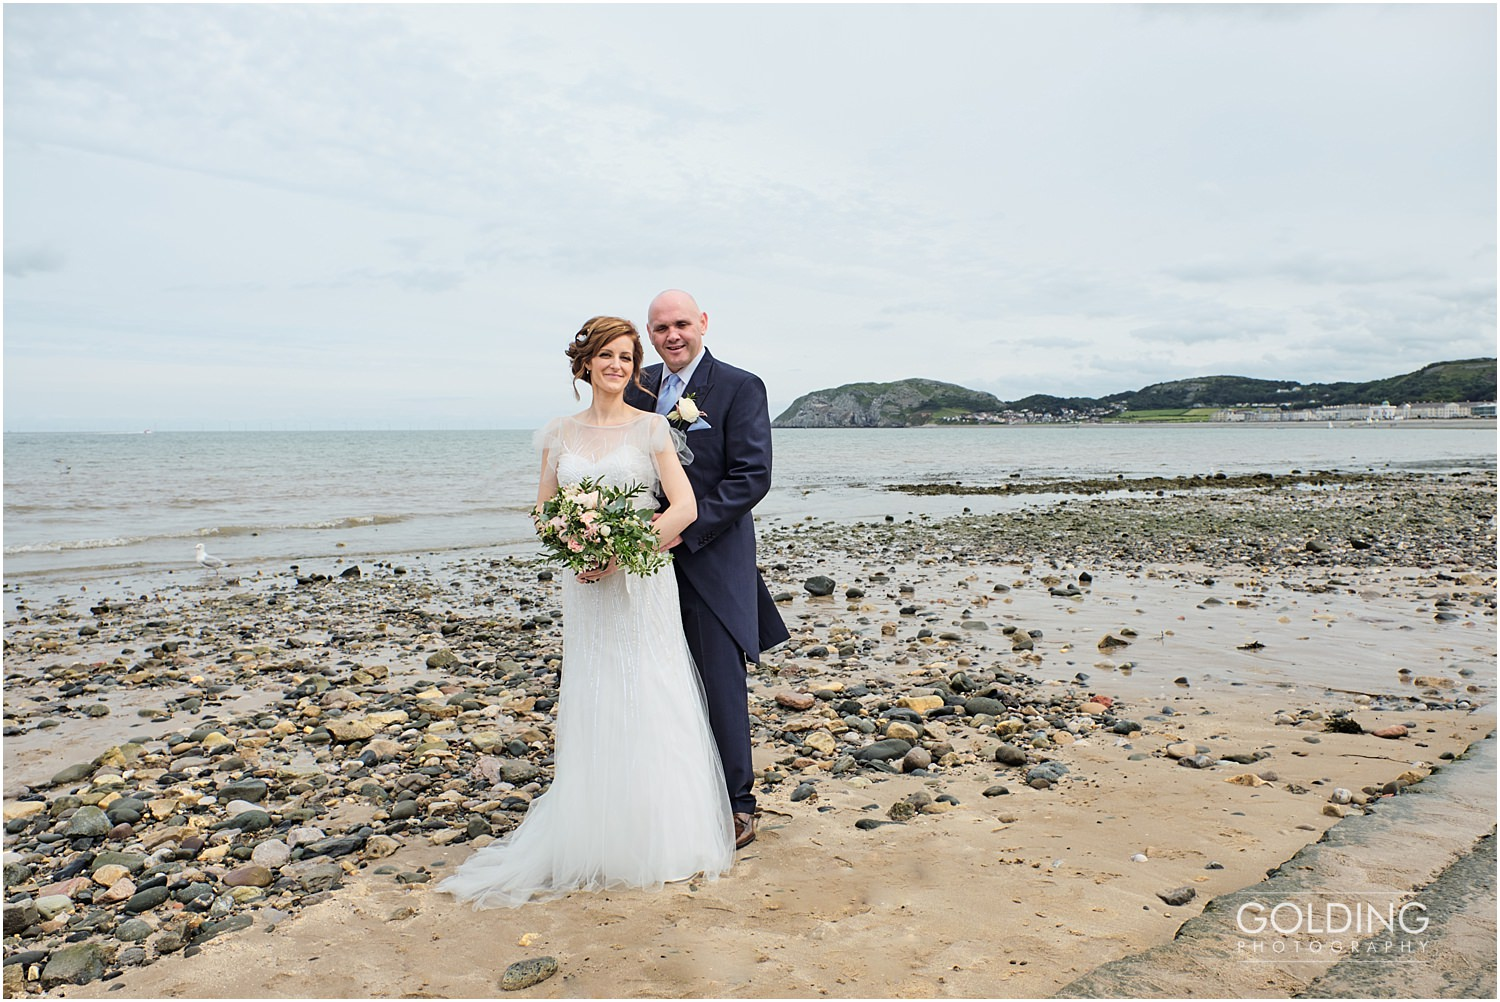 St. George's Hotel Llandudno wedding photography